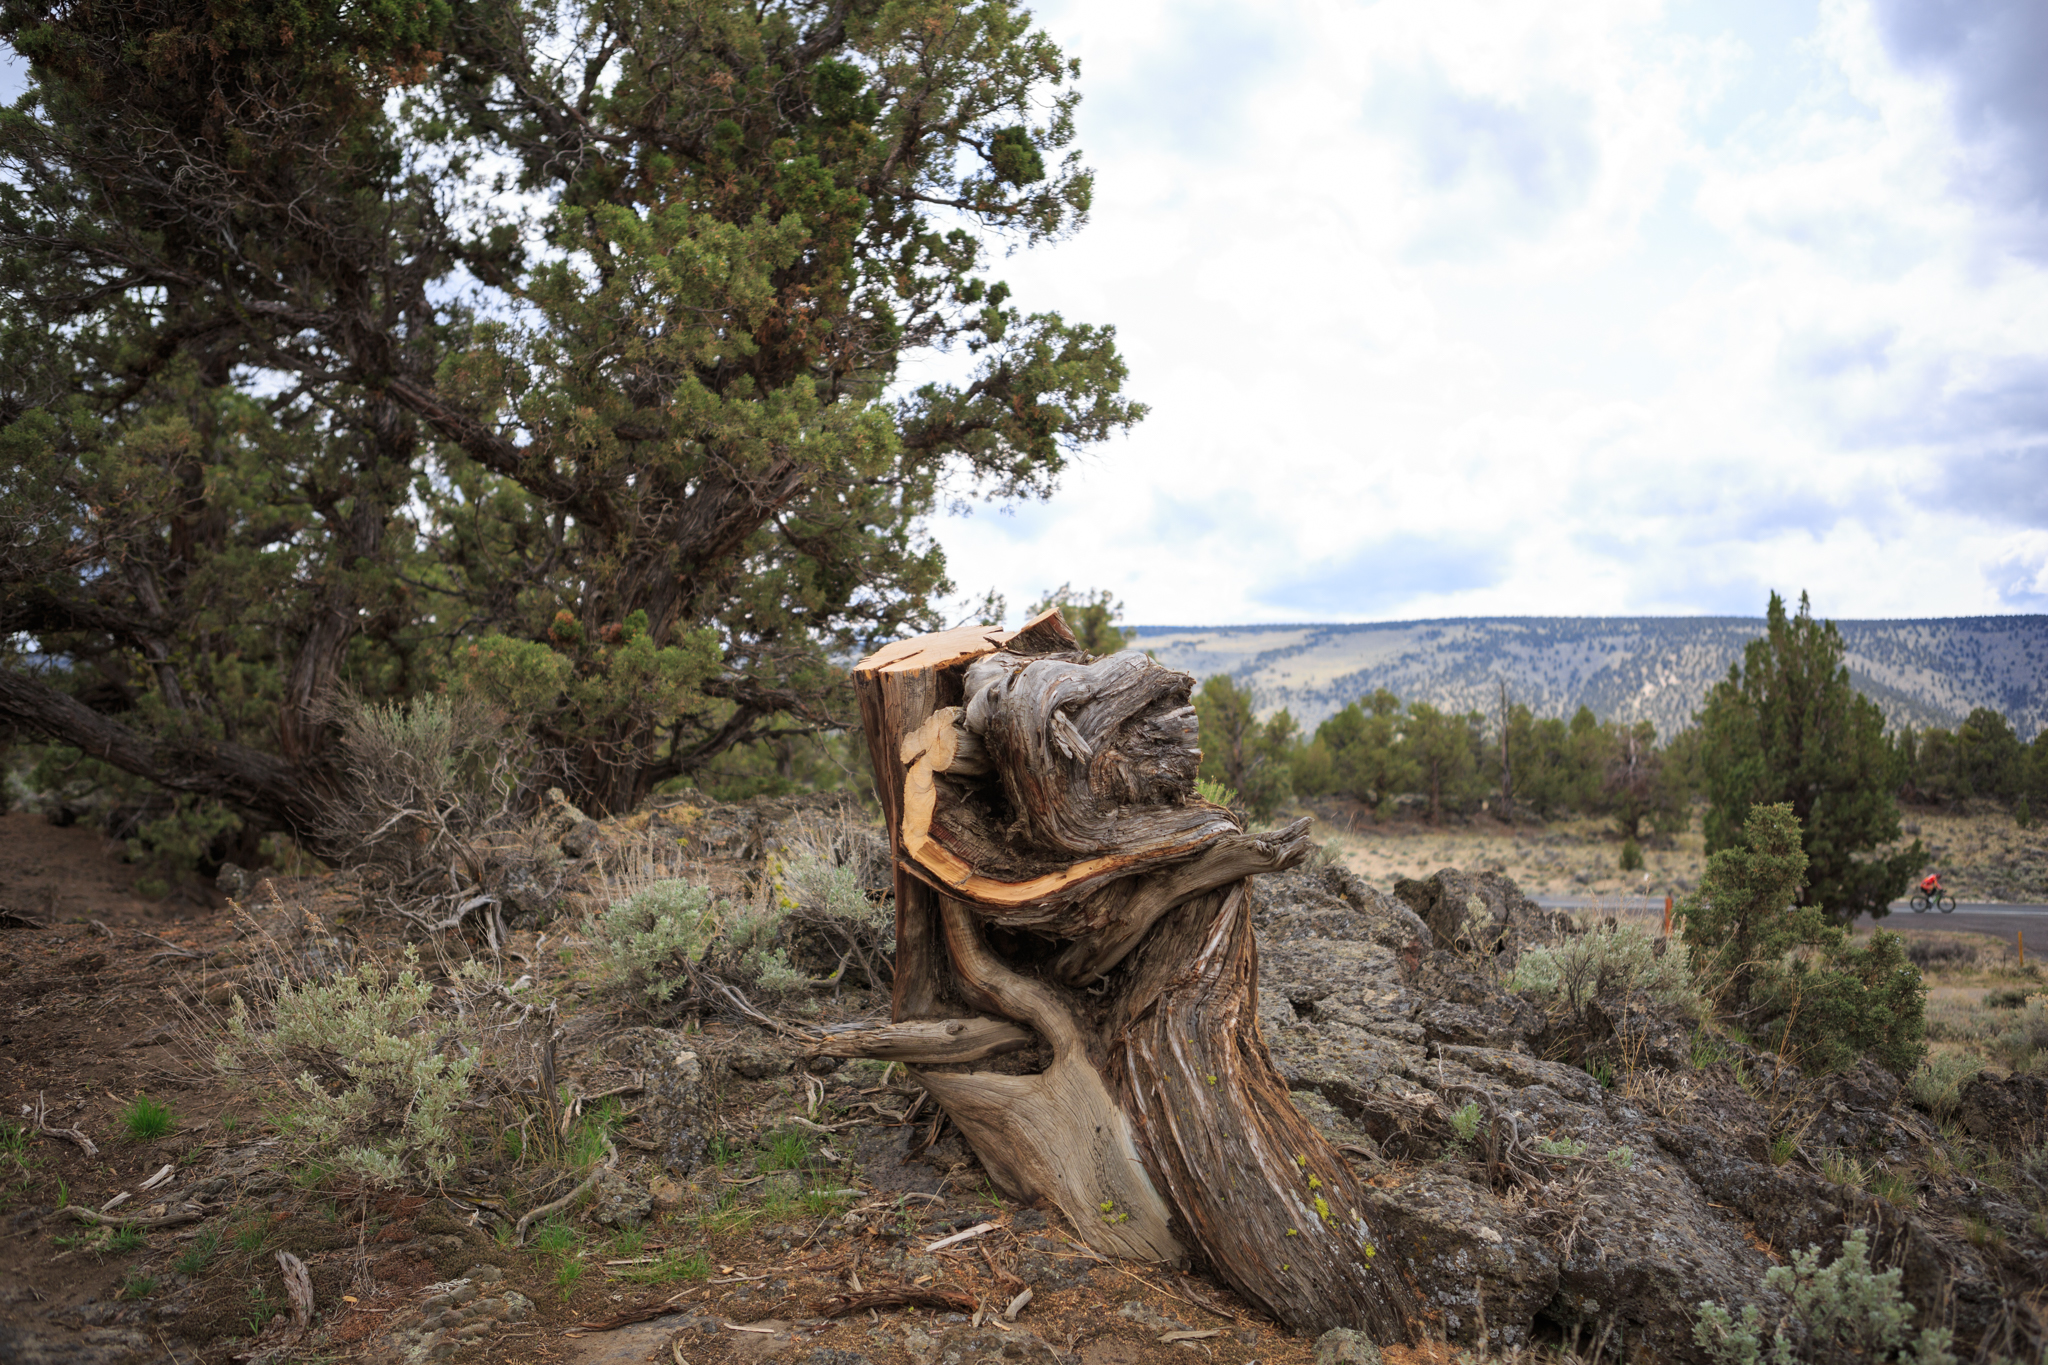 This twisted stump is all that remains of the ancient juniper that stood at the Flatiron trailhead outside of Bend, Oregon. The tree was chopped down illegally in December 2015.